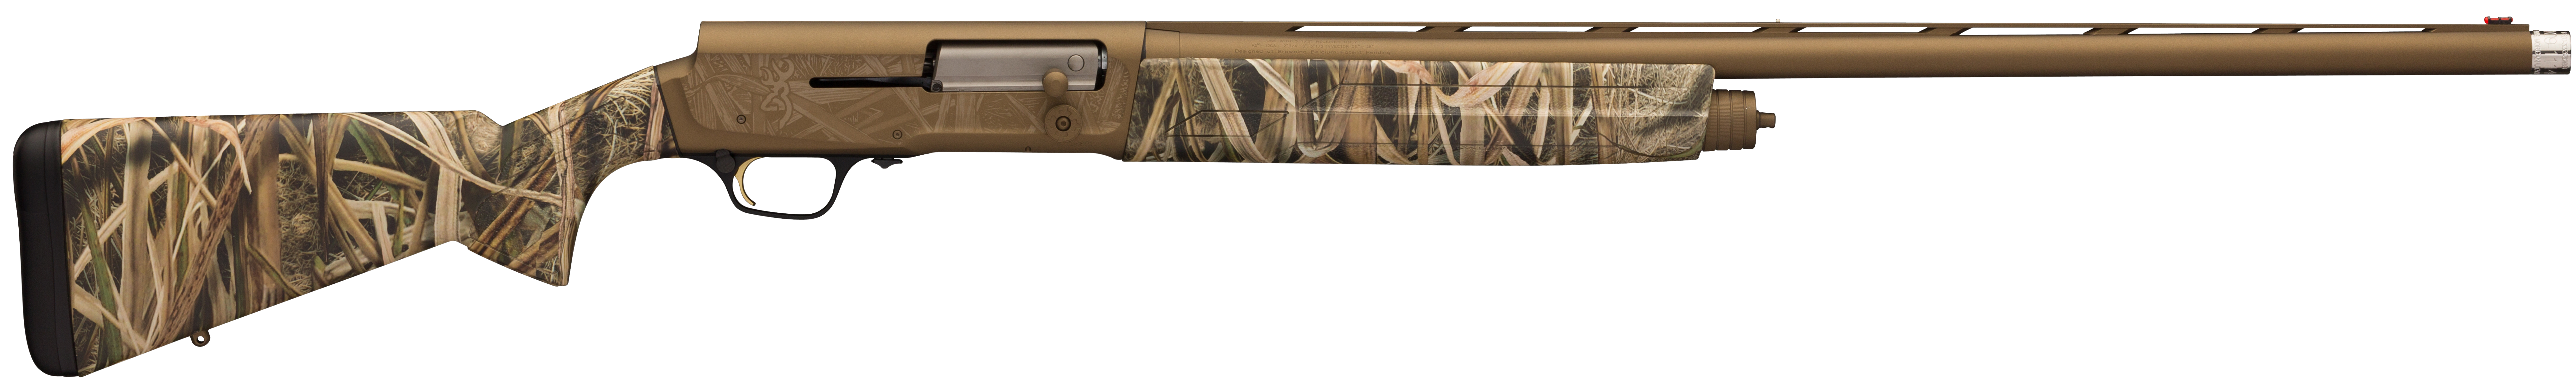 Browning A5 Wicked Wing Semi-Auto Shotgun 3.5'' 12 Gauge 28'' Burnt Bronze Cerakote - Synthetic - Mossy Oak Shadow Grass Blades